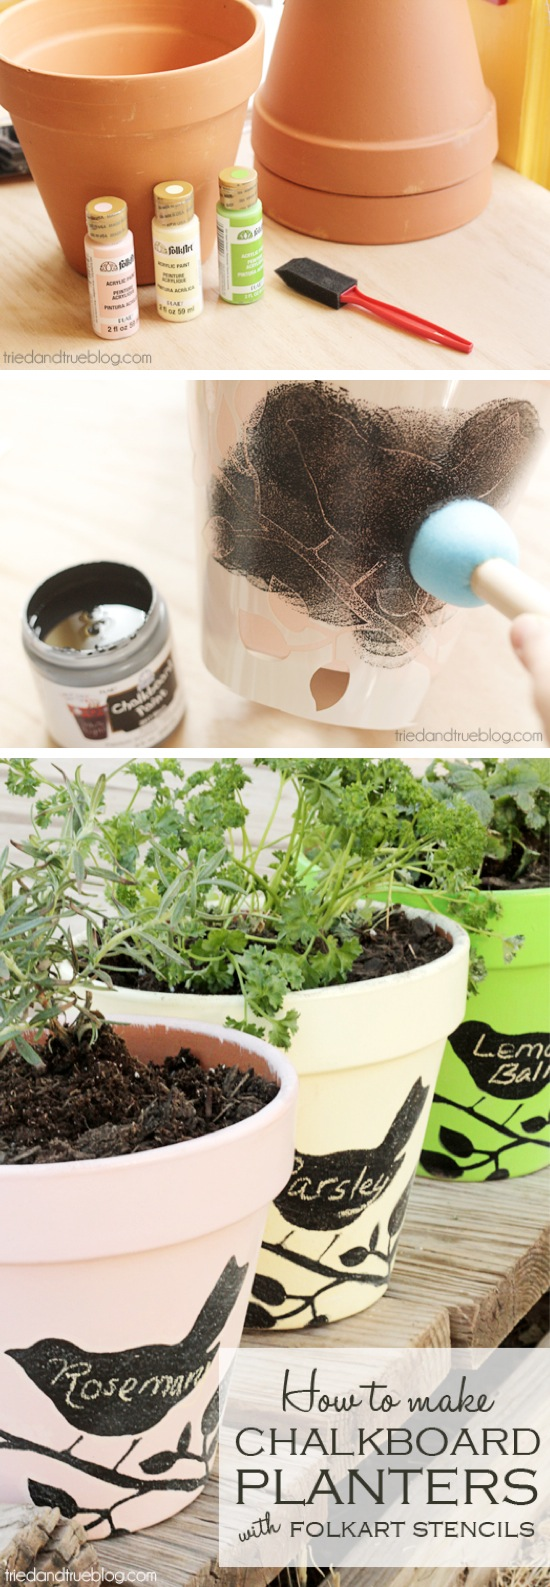 DIY Chalkboard Stencil Planters - Craft By Photo